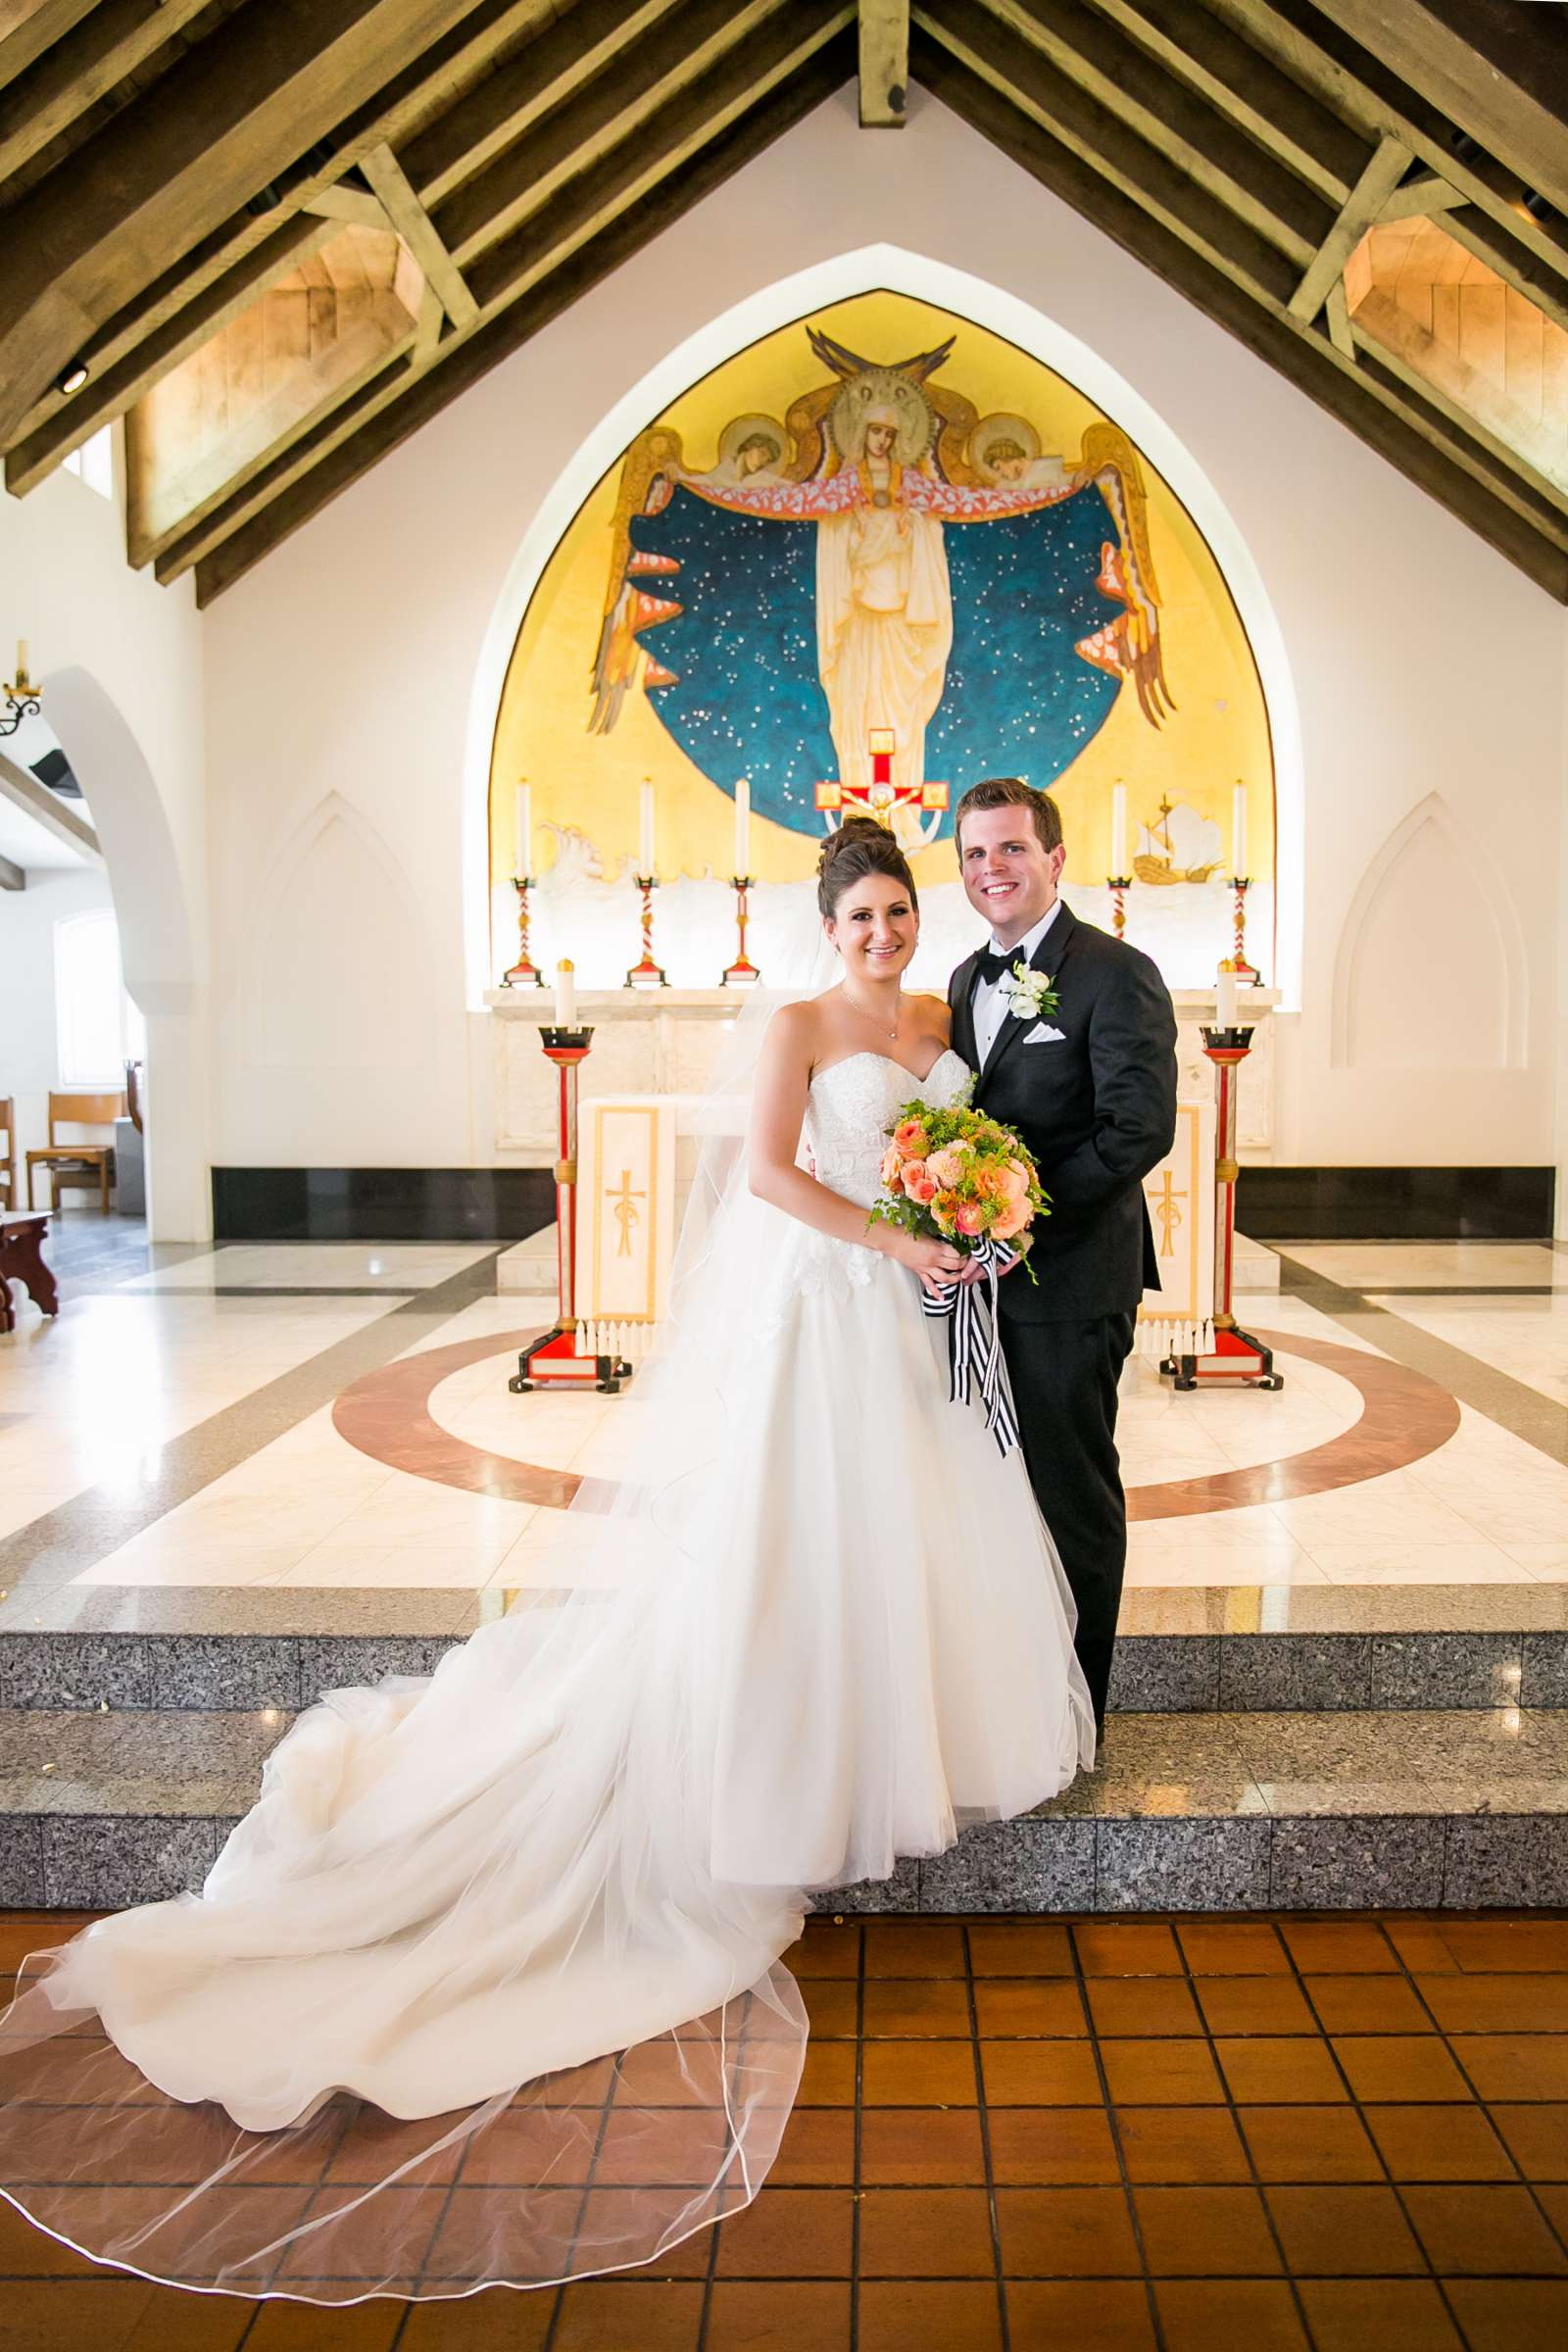 Bahia Hotel Wedding coordinated by I Do Weddings, Meredith and Jack Wedding Photo #45 by True Photography